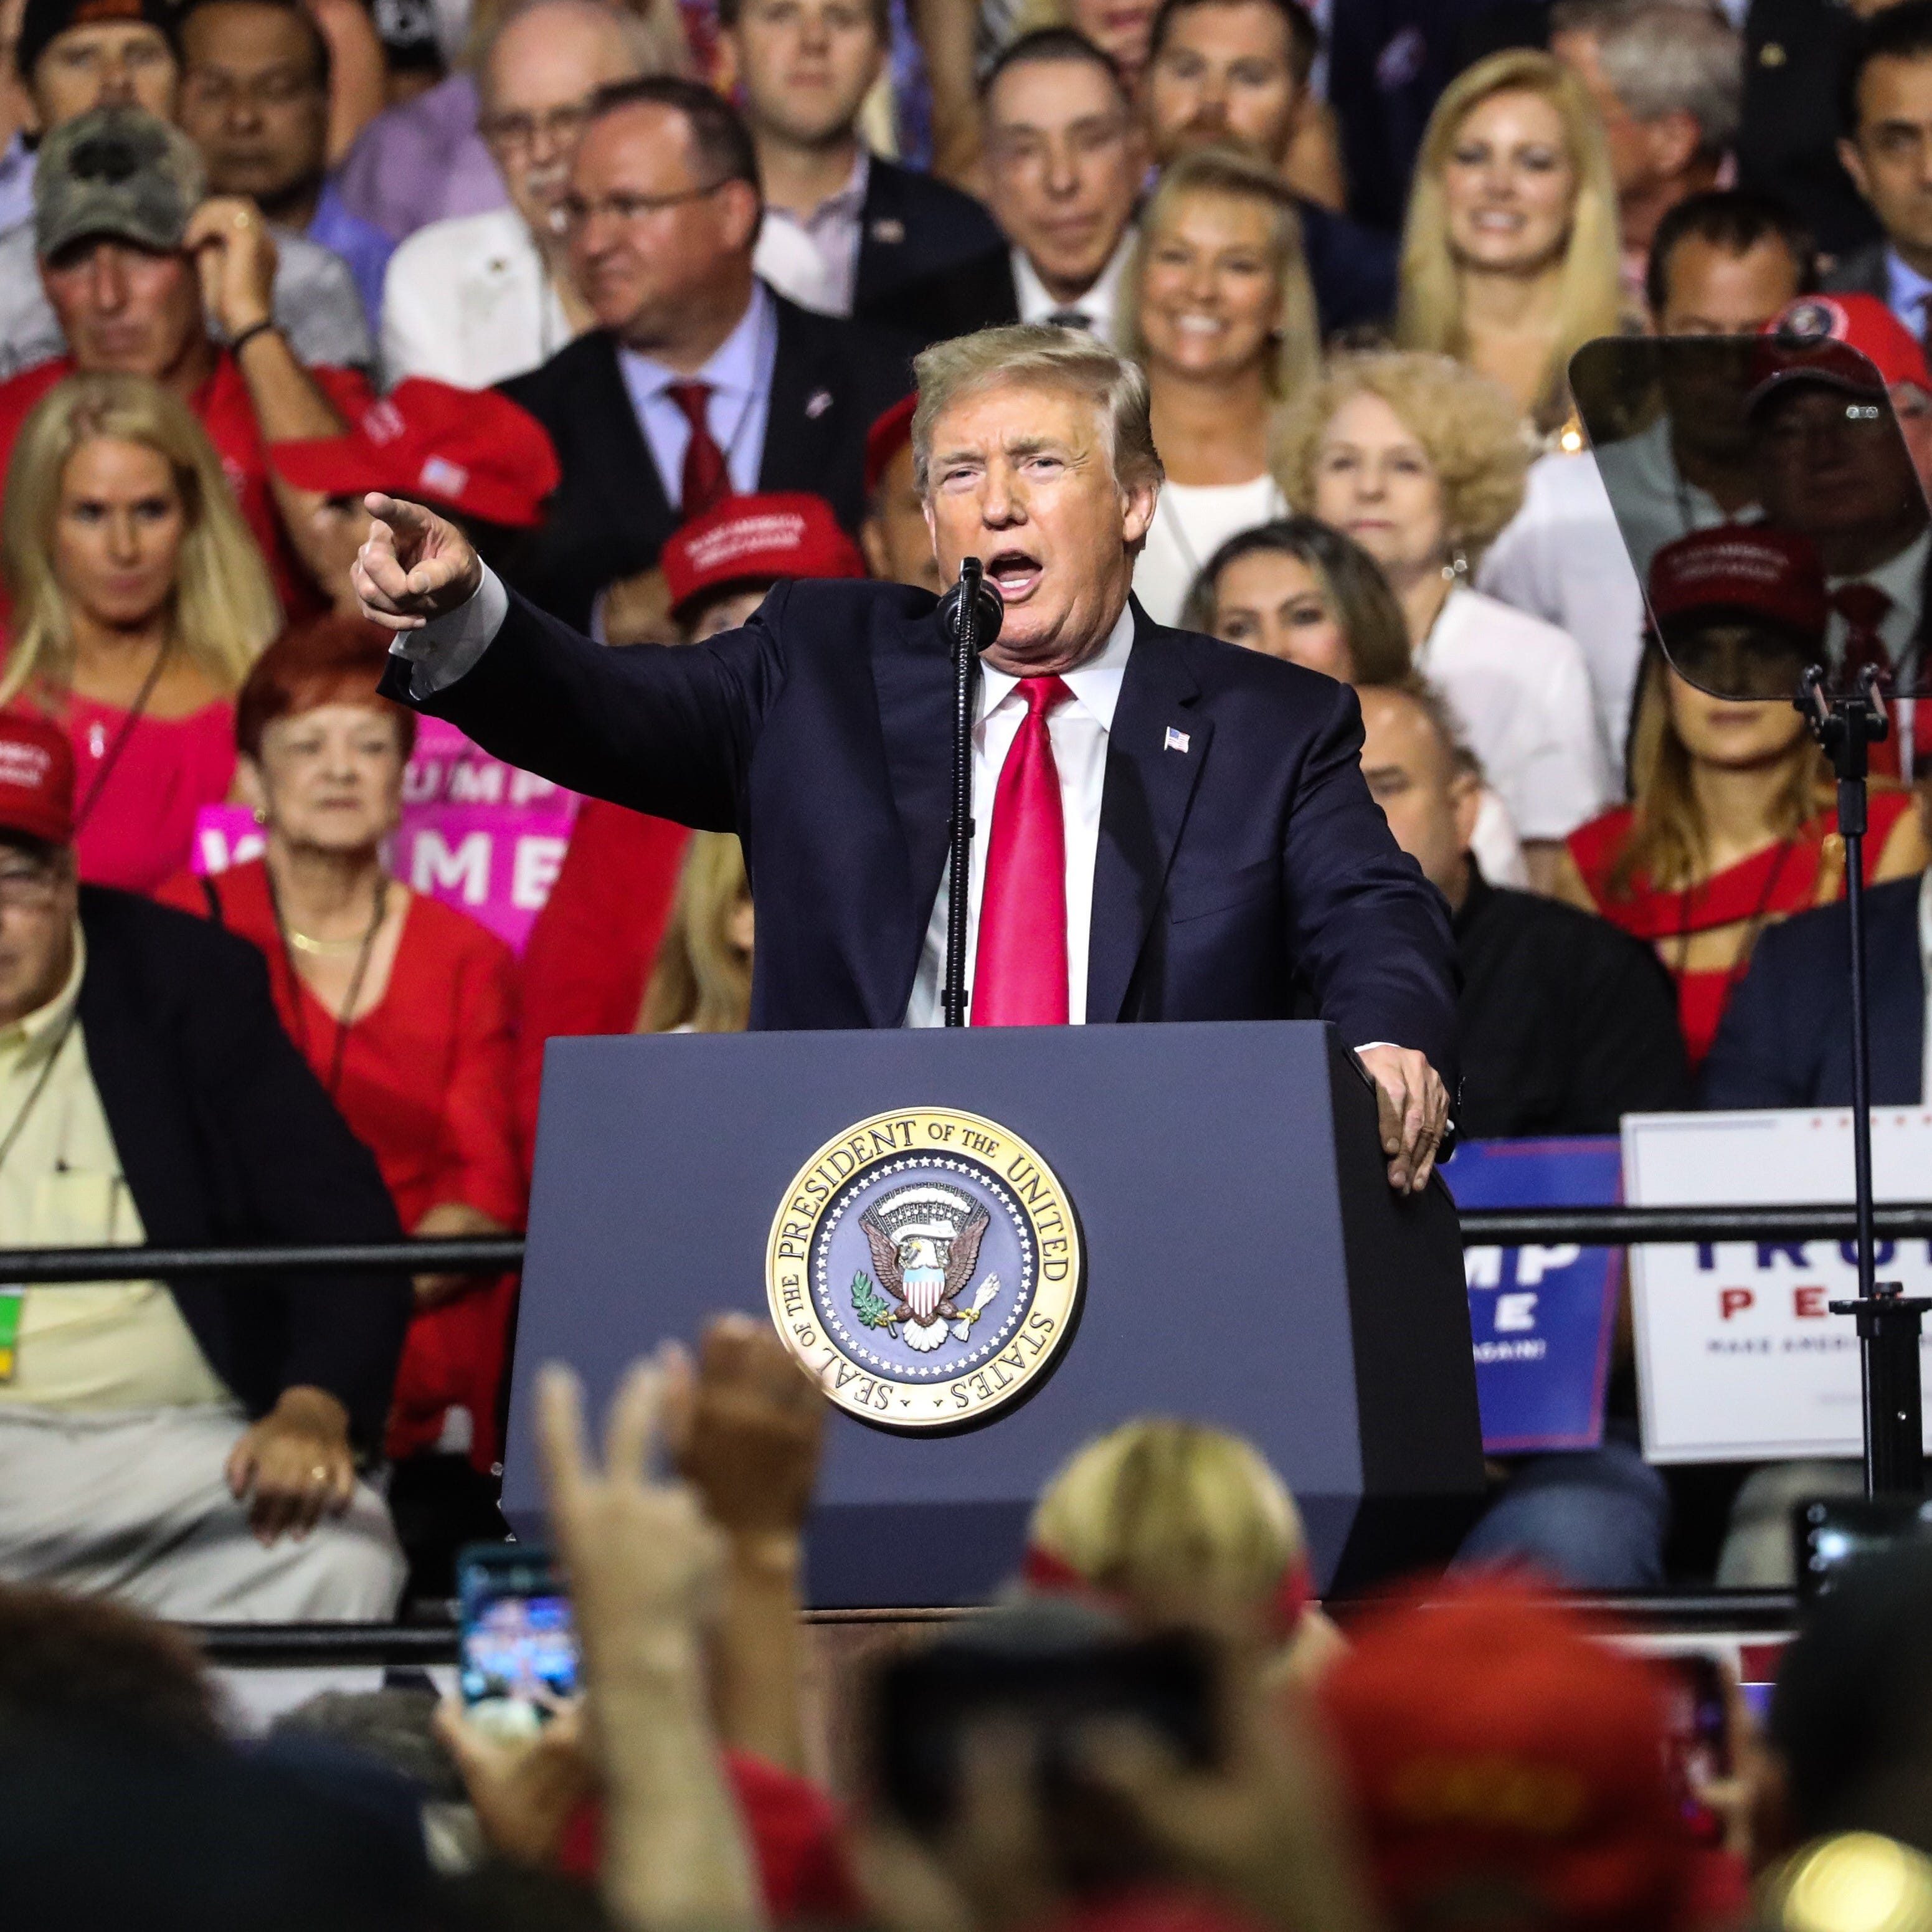 President Trump addresses supporters in Tampa on Tuesday night.